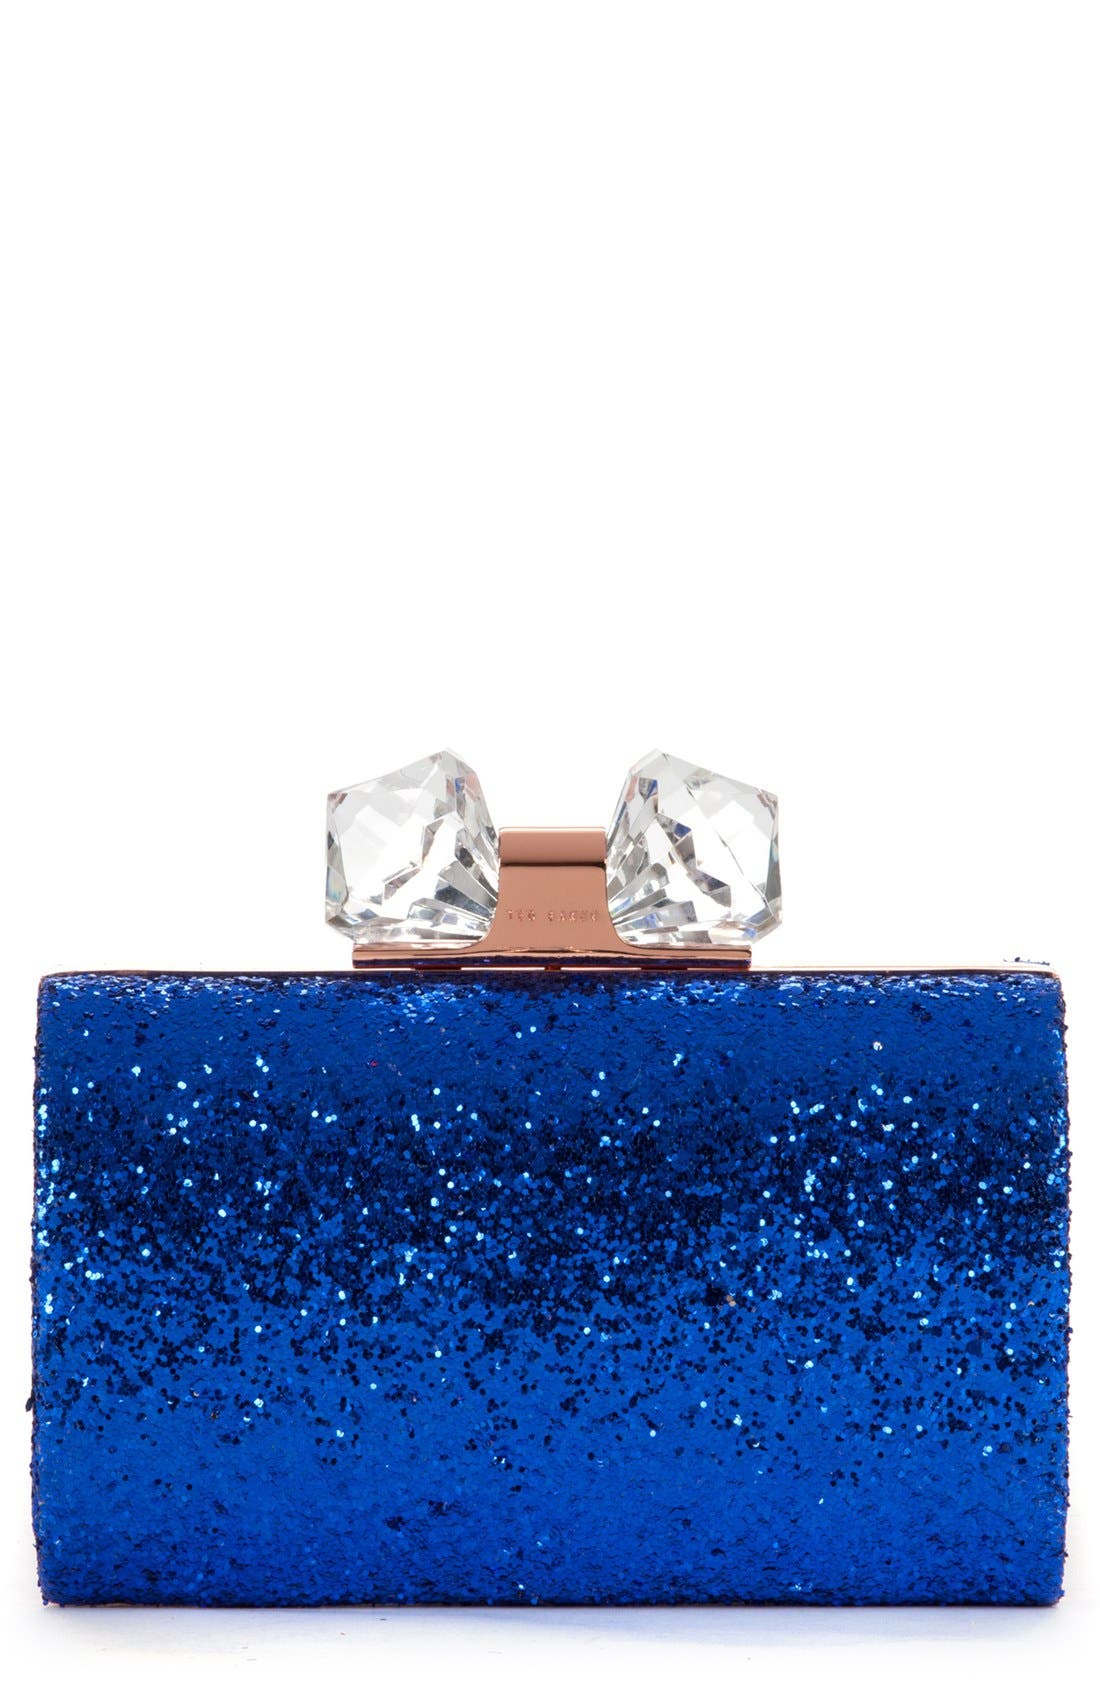 Alternate Image 1 Selected - Ted Baker London 'Karsie' Glitter Frame Clutch